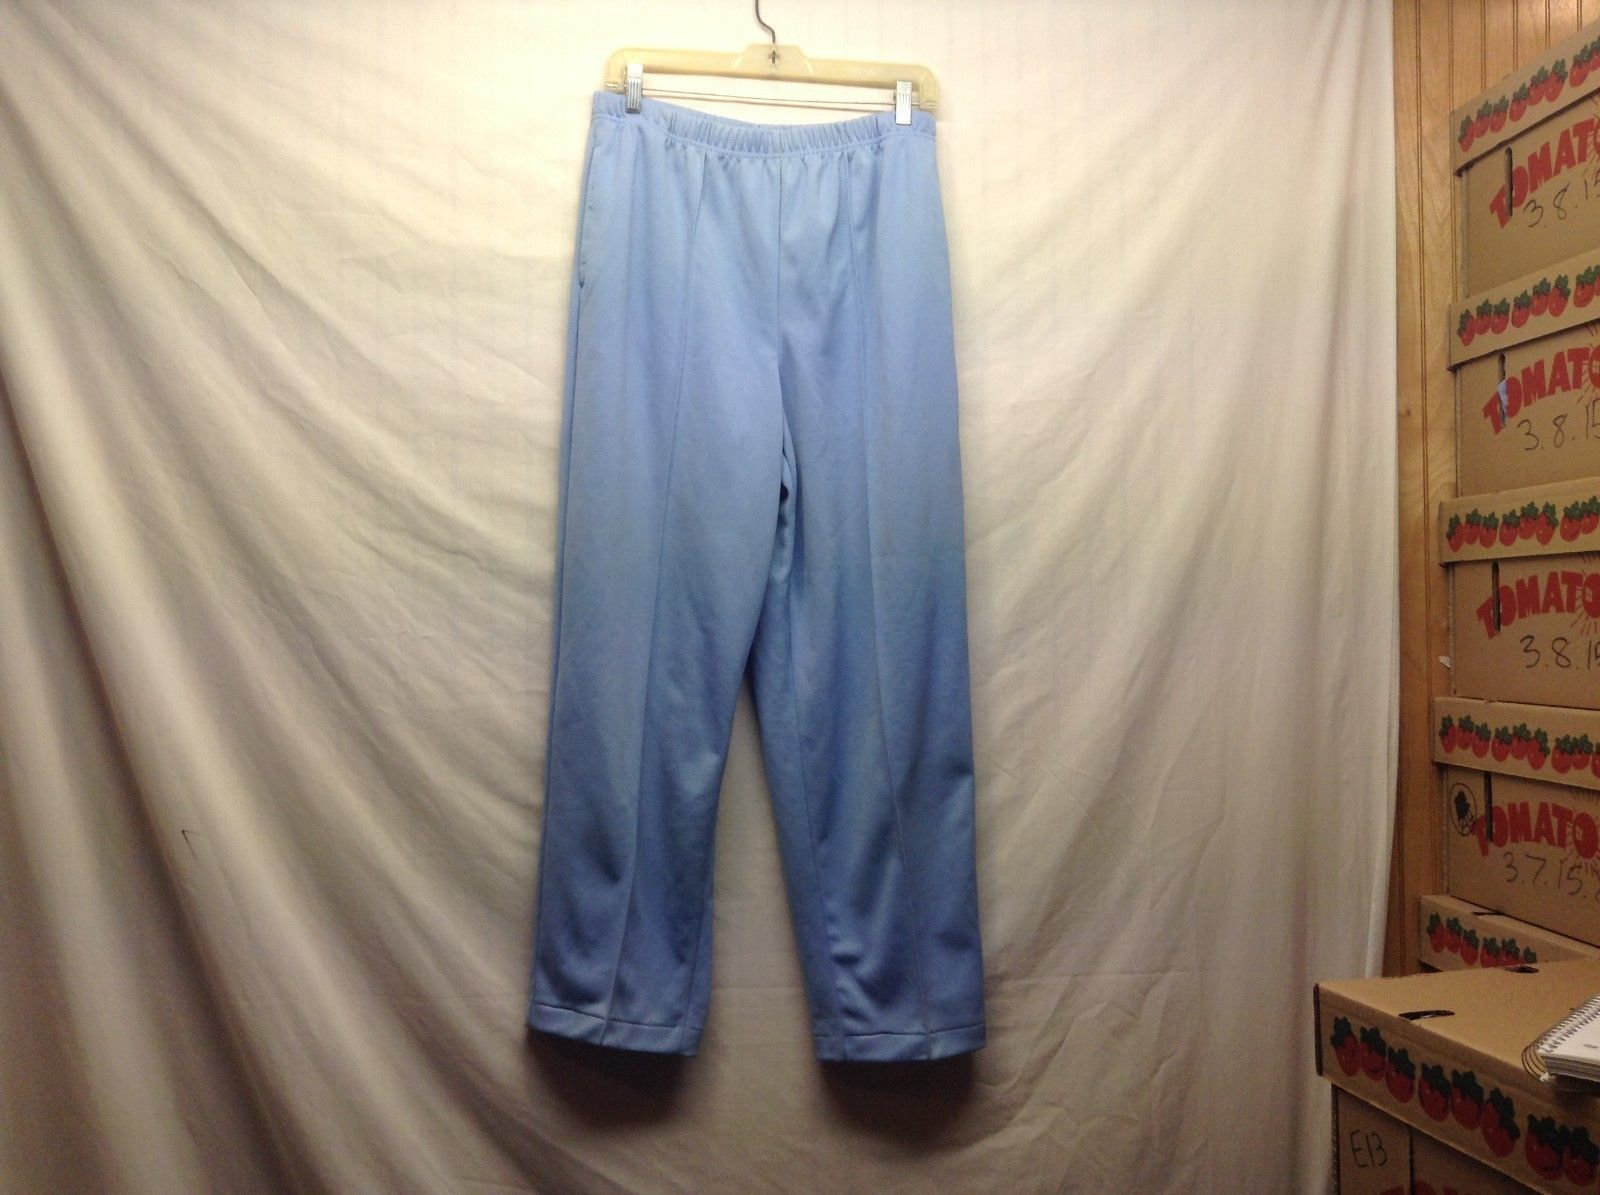 Blair Ladies light Blue Stretchy Casual Pants Sz 12PT